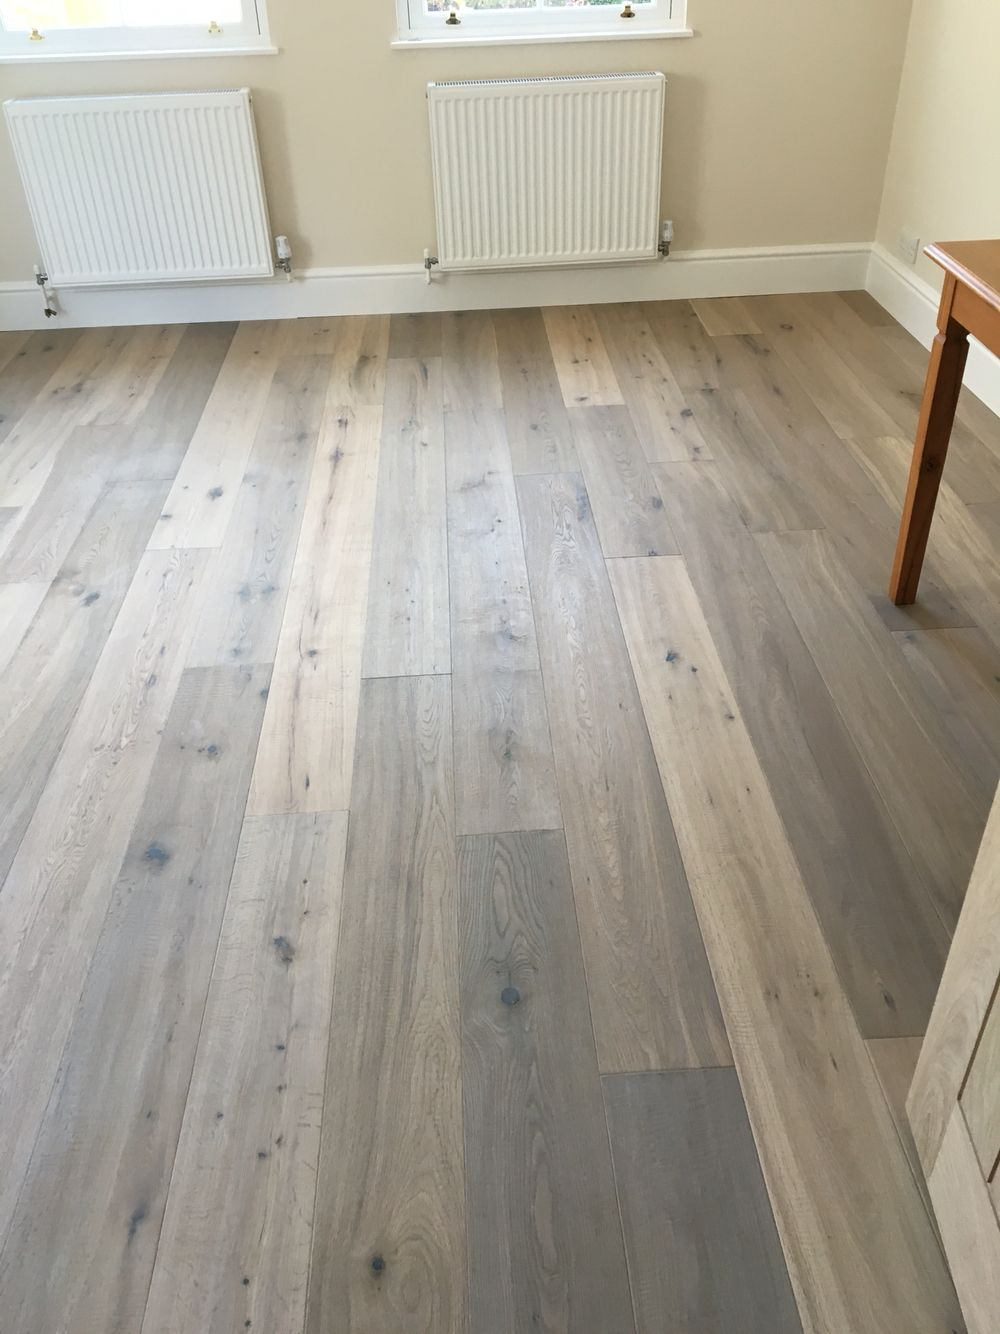 Tedd Todd Warehouse Raw Cotton By Floorcraft Uk Com Home Remodeling Flooring House